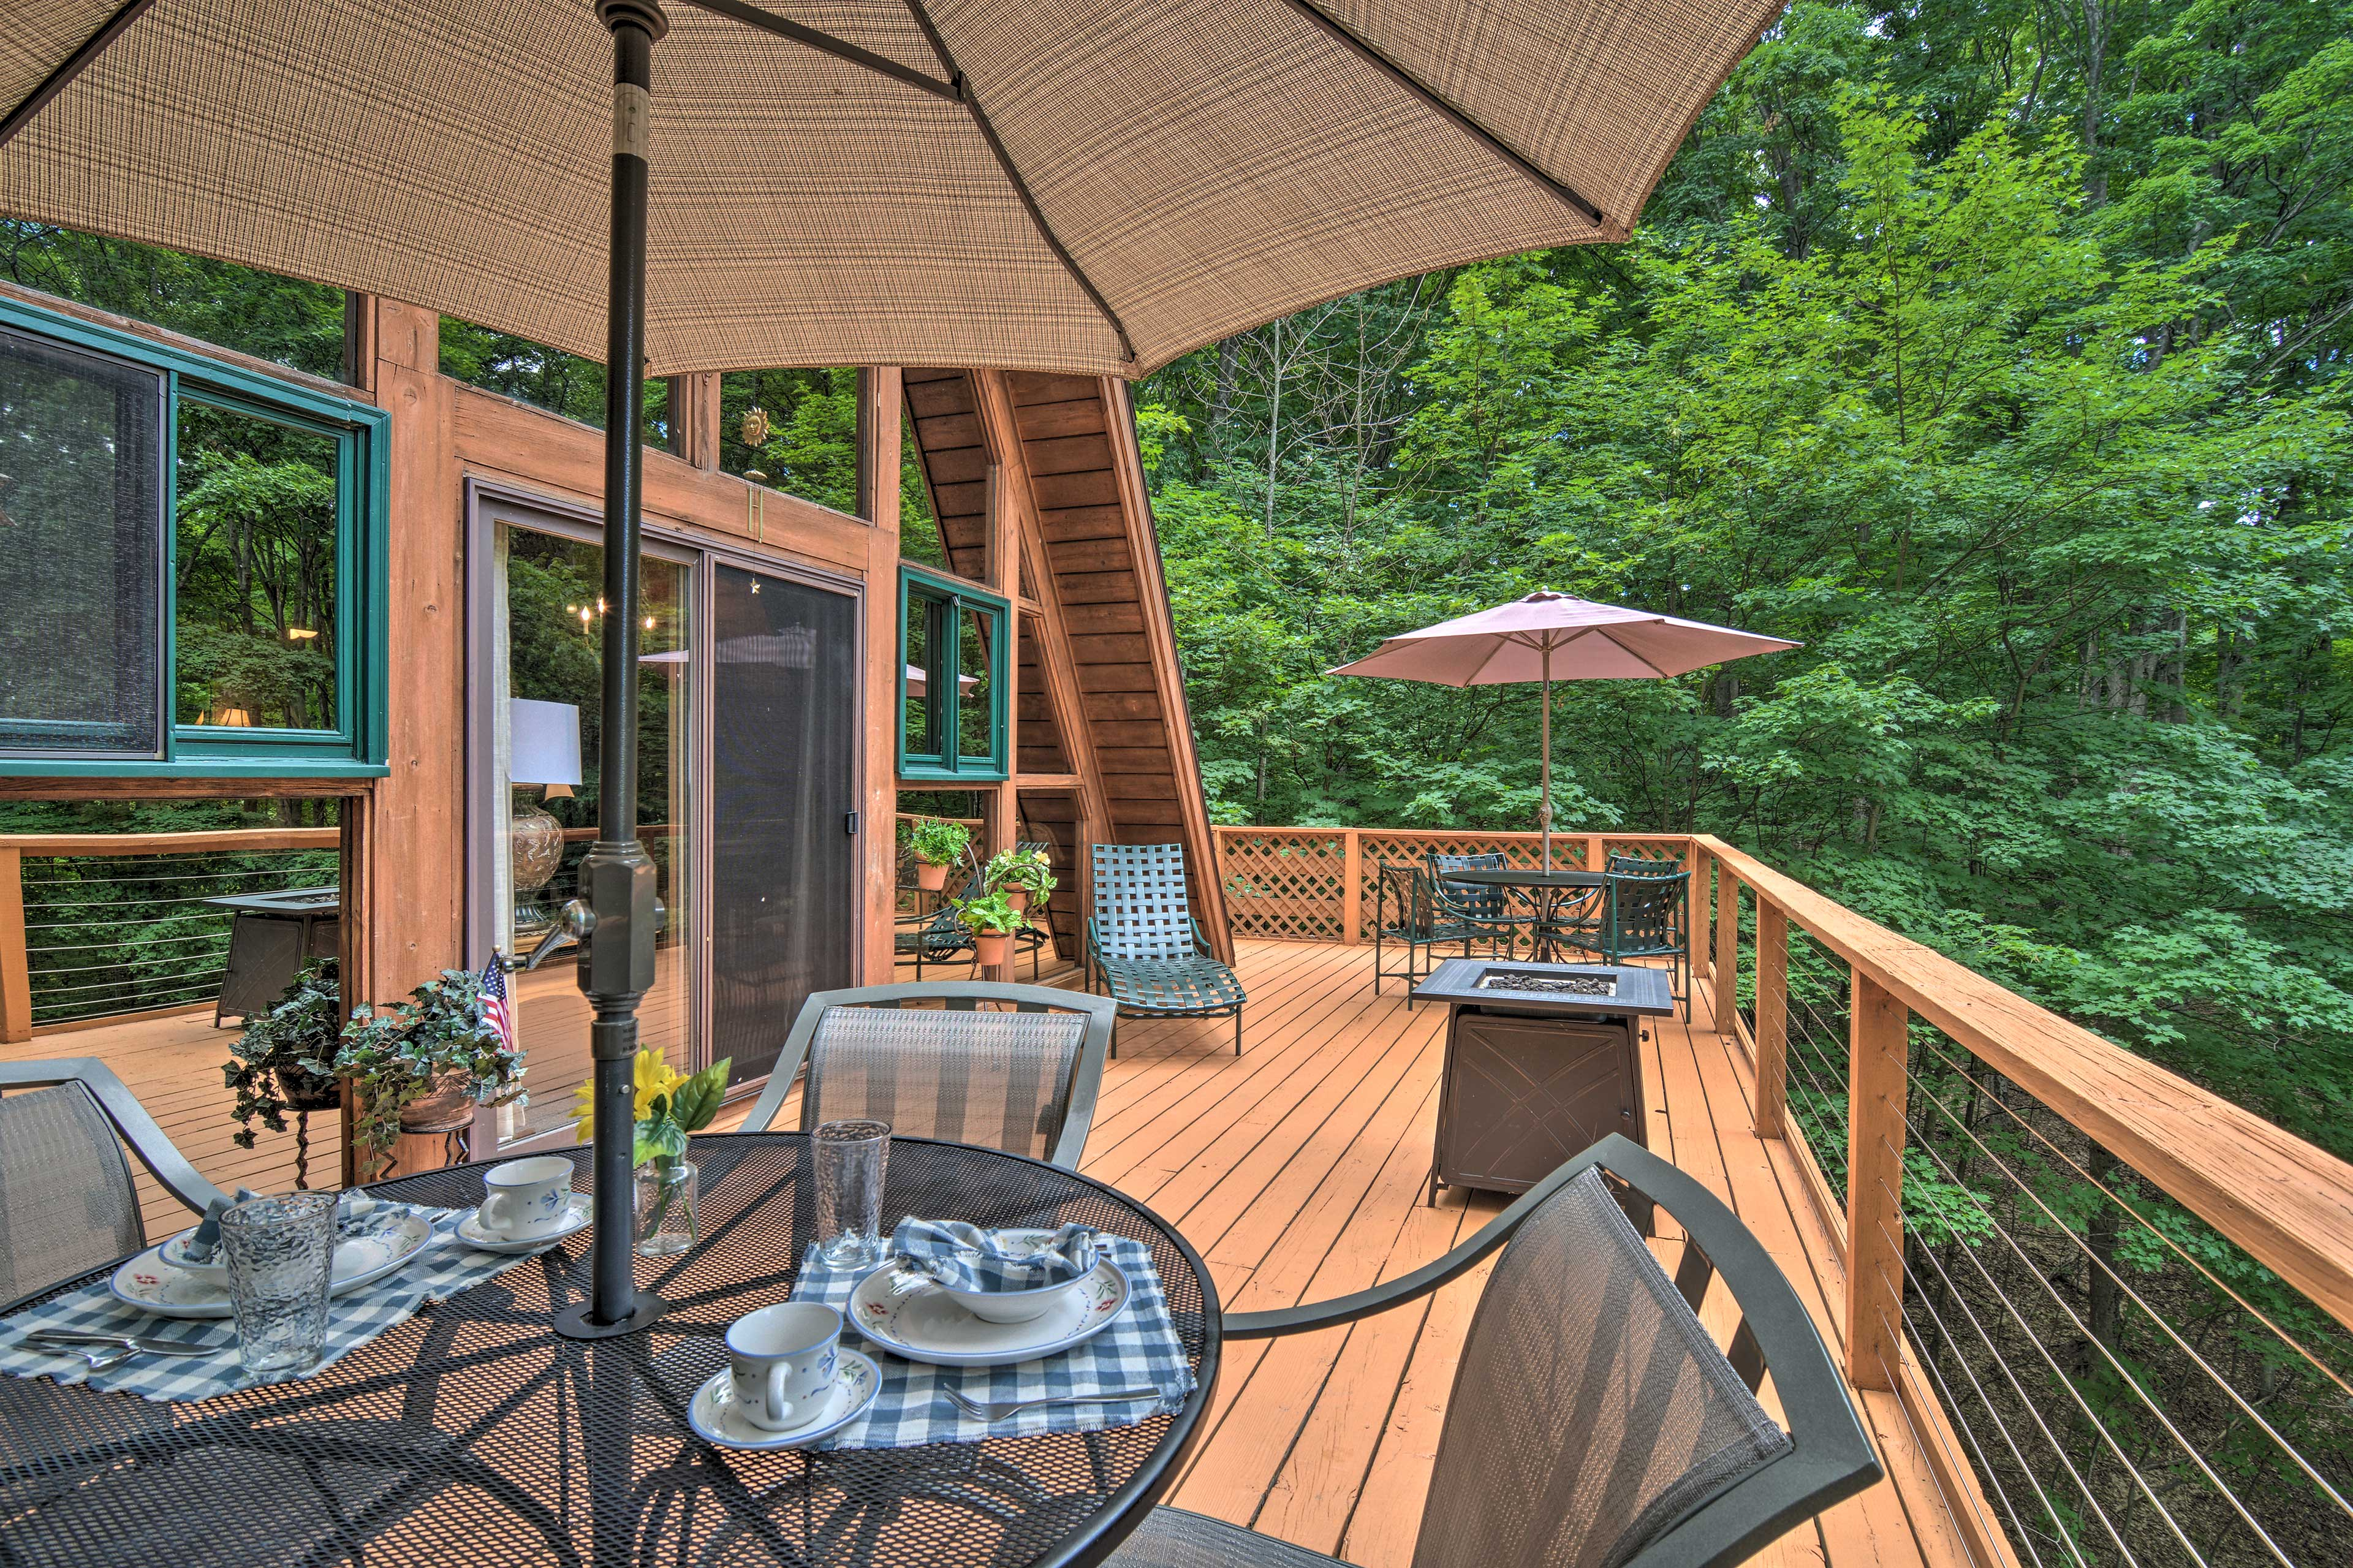 In the summer, the deck is fully furnished.